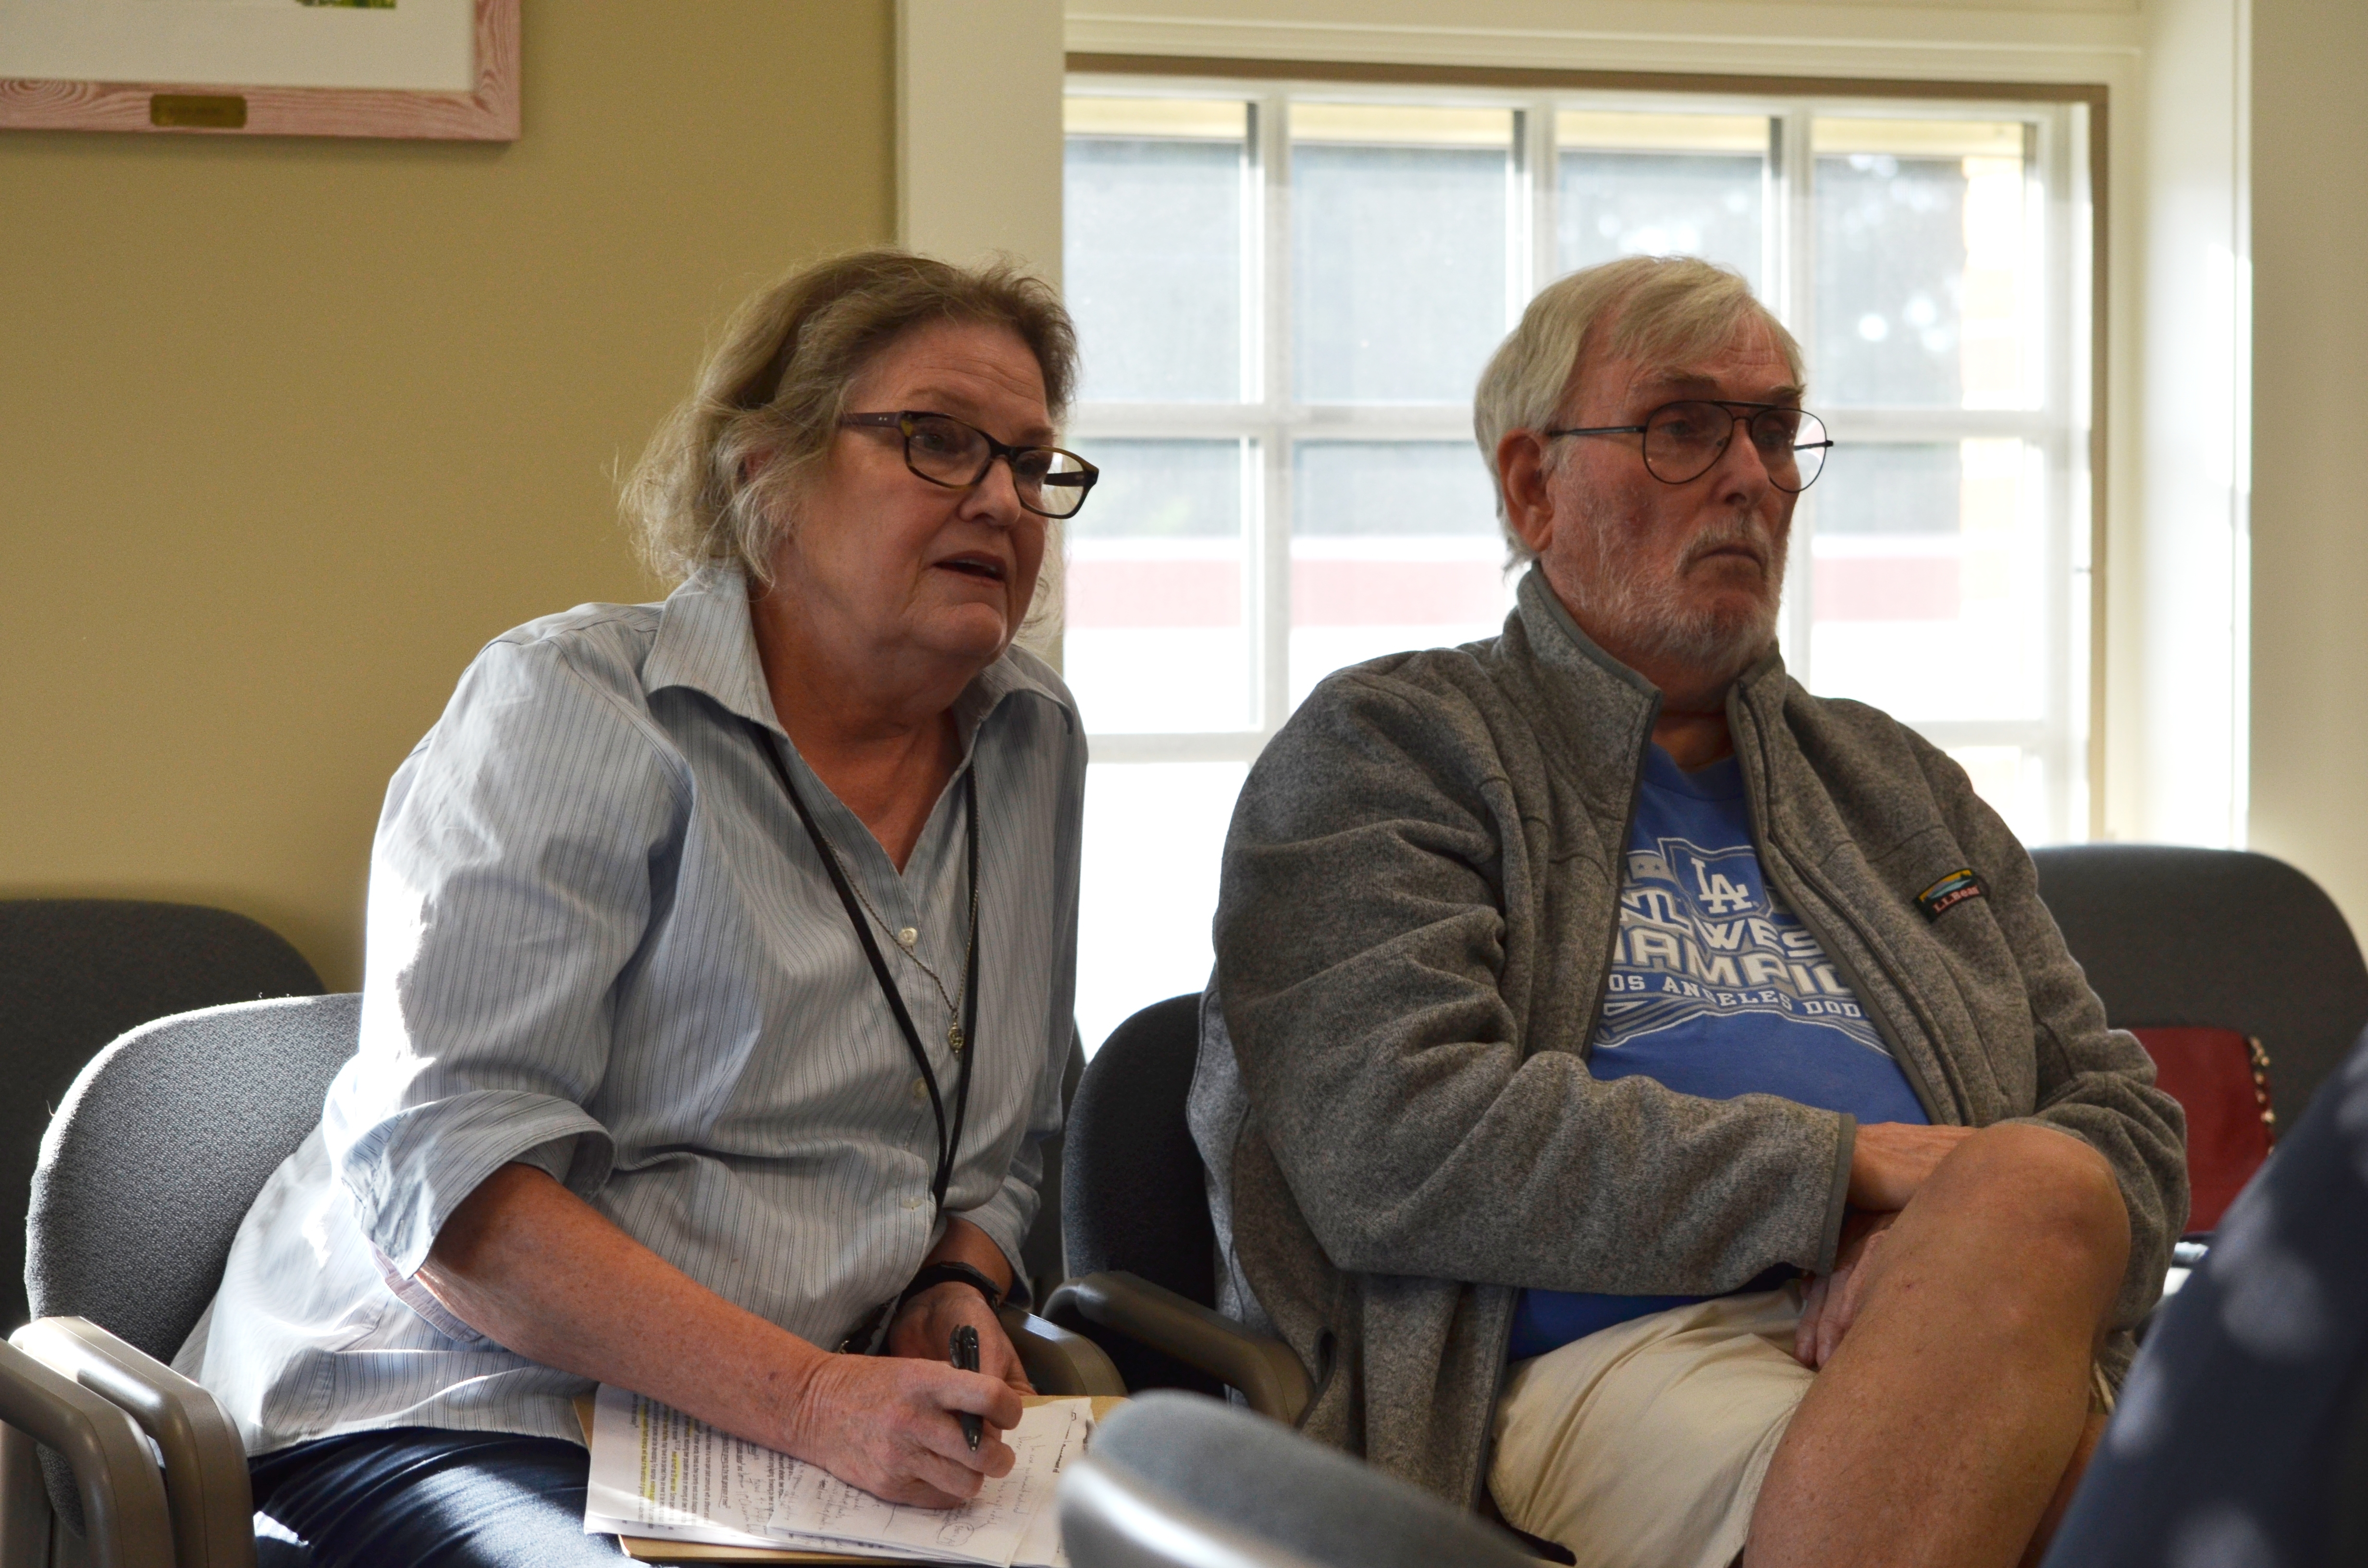 Westhampton Beach residents Jeanne and Dean Speir supported allowing deer fence to be eight feet tall at the latest village work session. ANISAH ABDULLAH